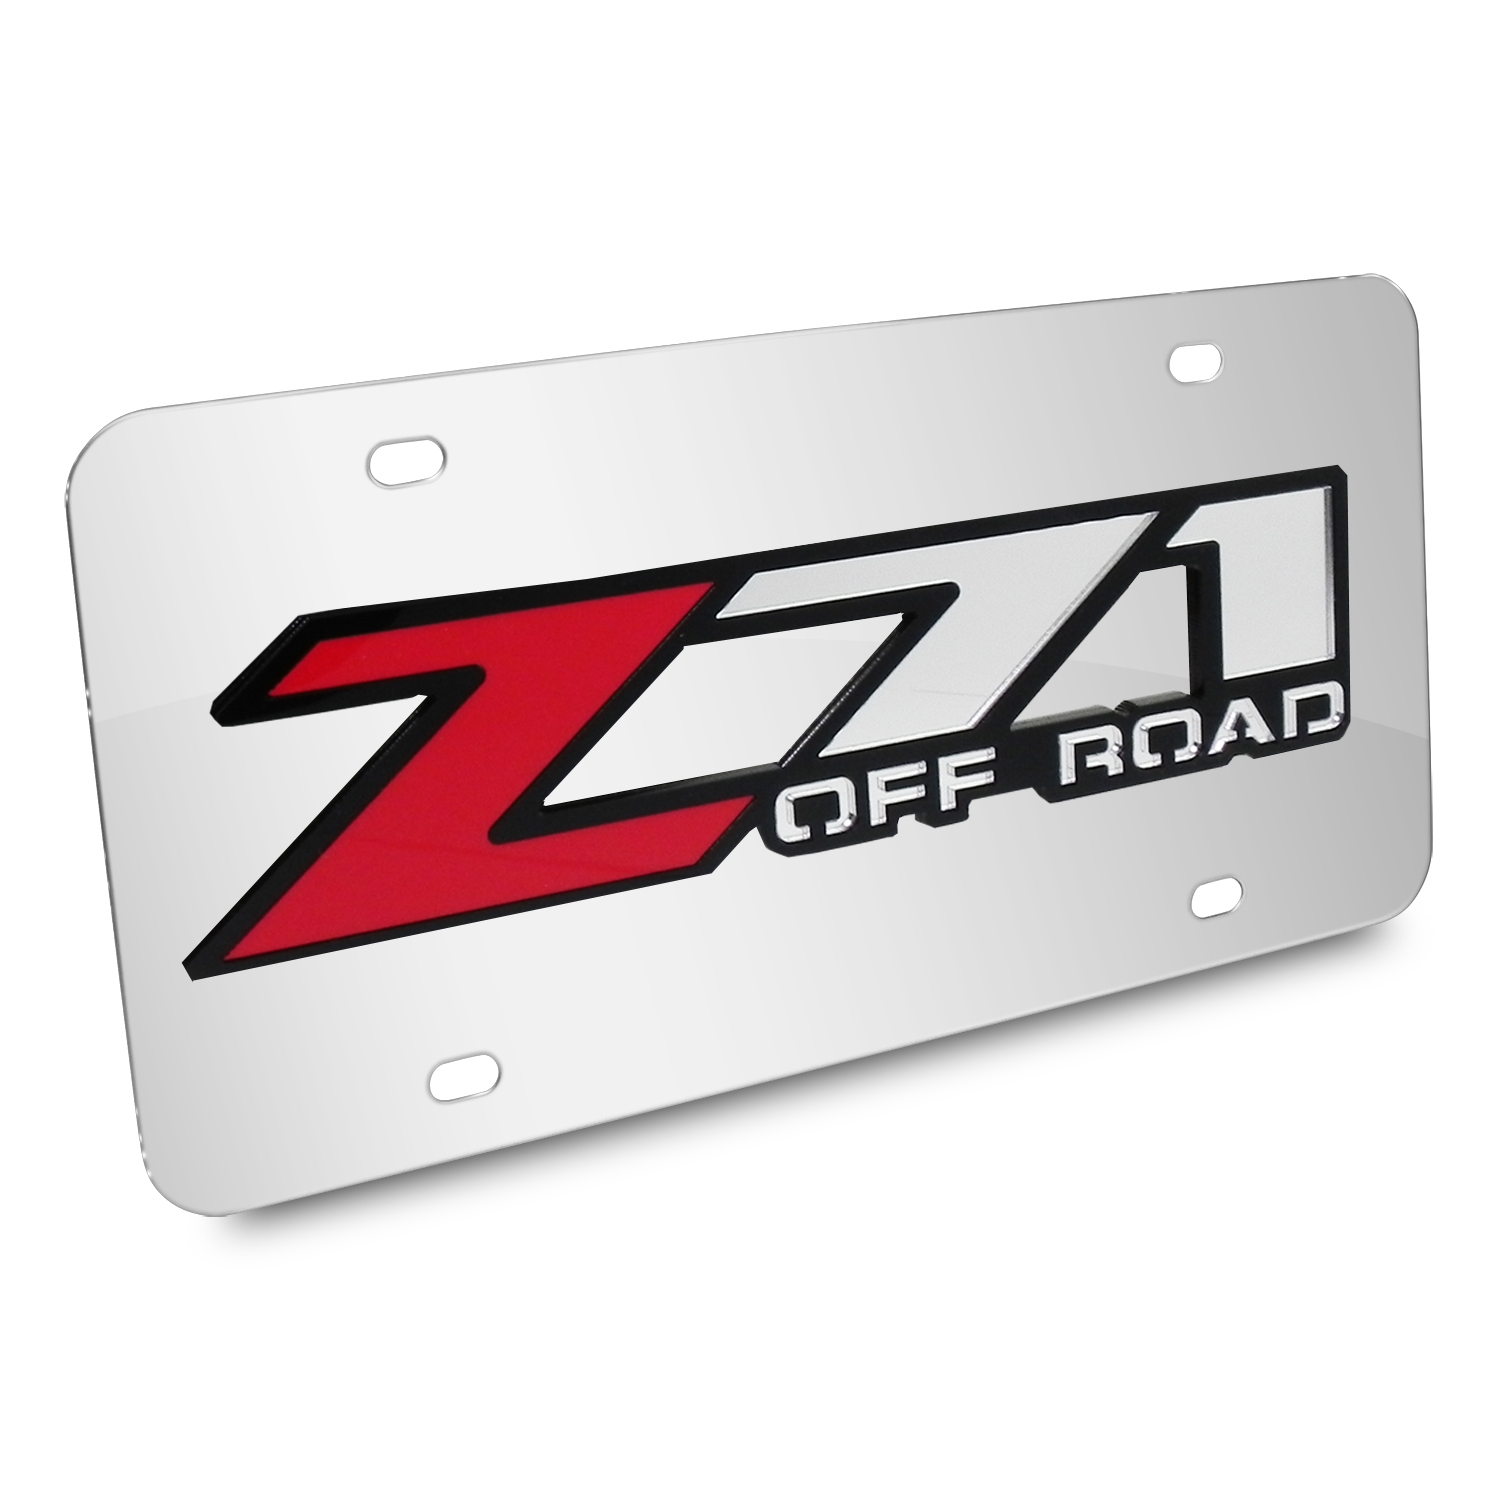 Chevrolet Z71 Offroad 3D Logo Chrome Stainless Steel License Plate